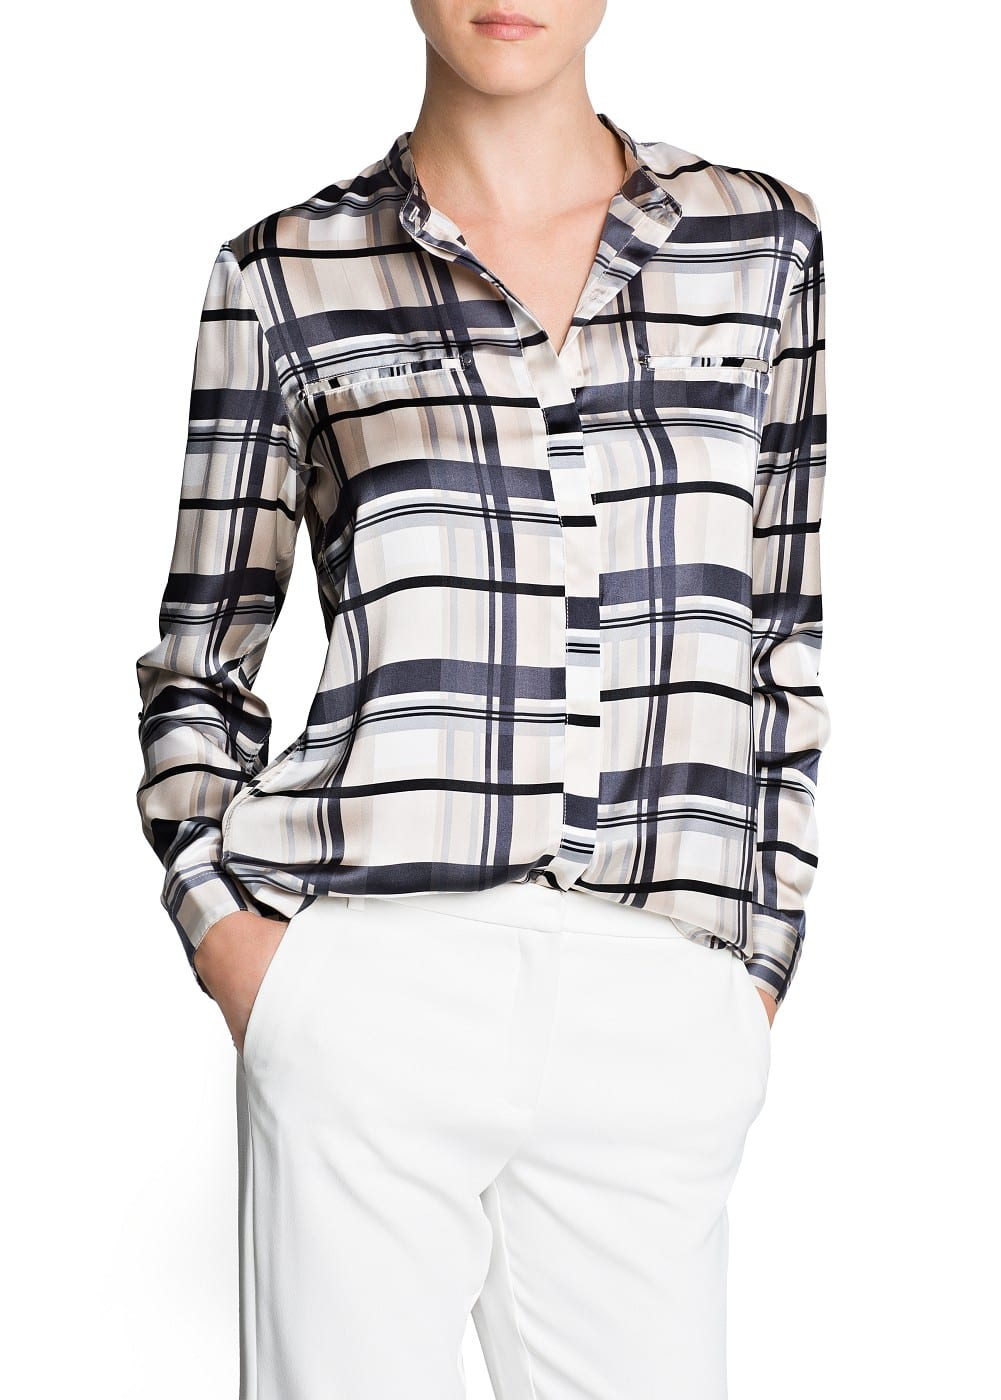 Satin finish check shirt